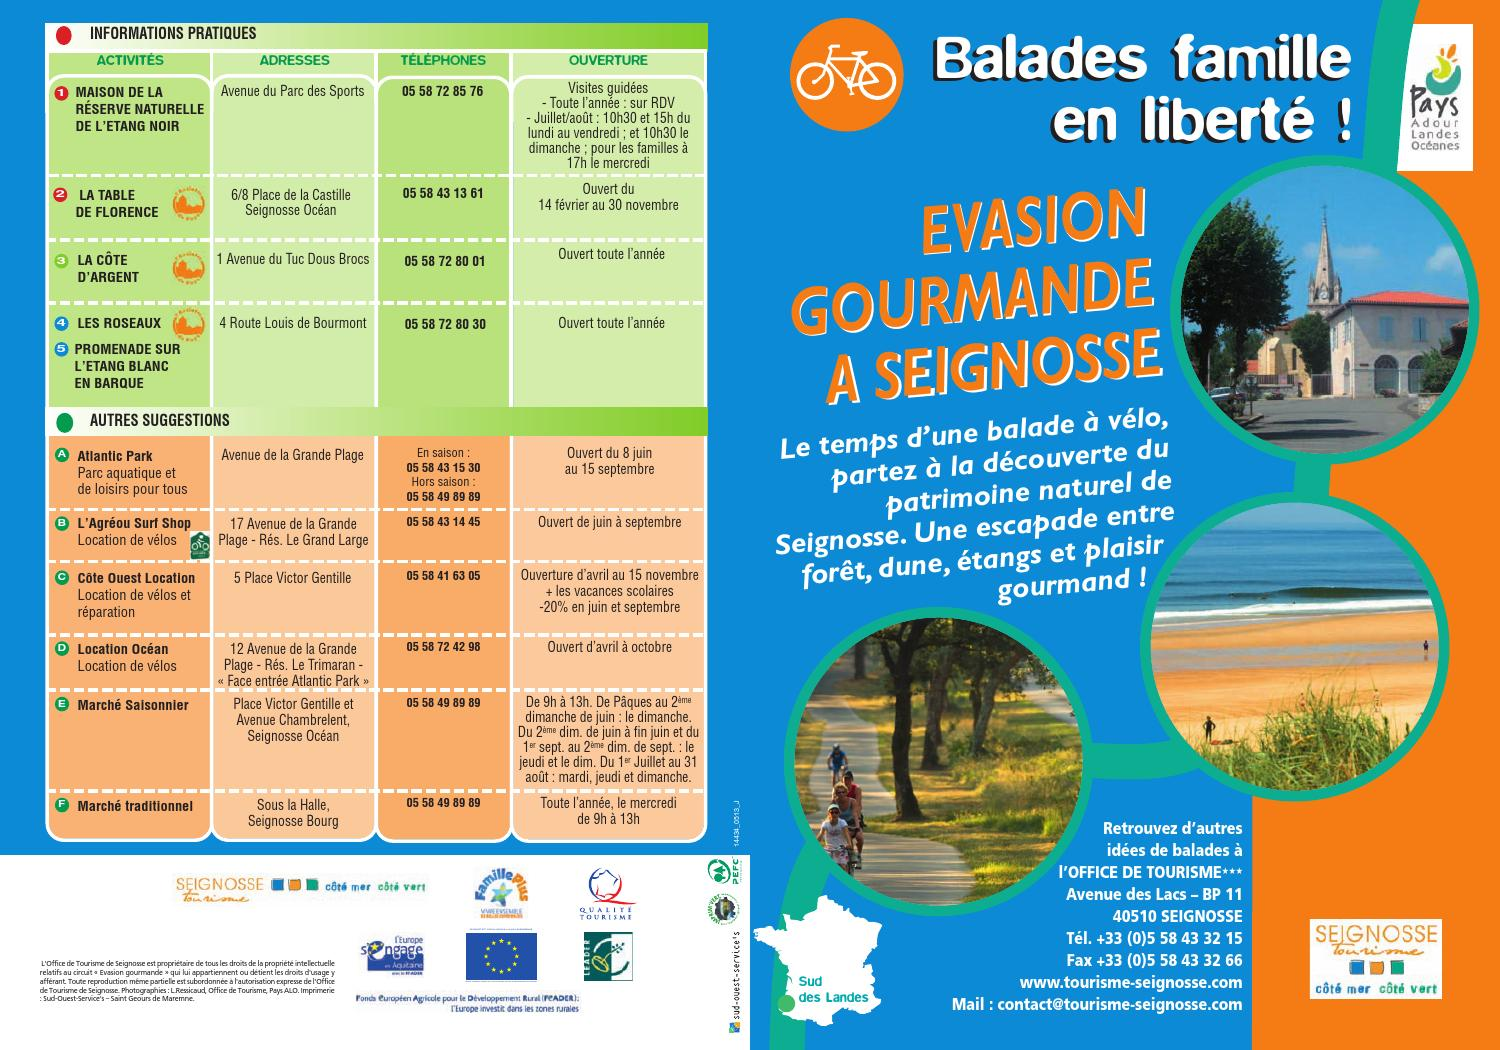 Balade famille evasion gourmande seignosse 2013 by office de tourisme de capbreton issuu - Office de tourisme cap breton ...